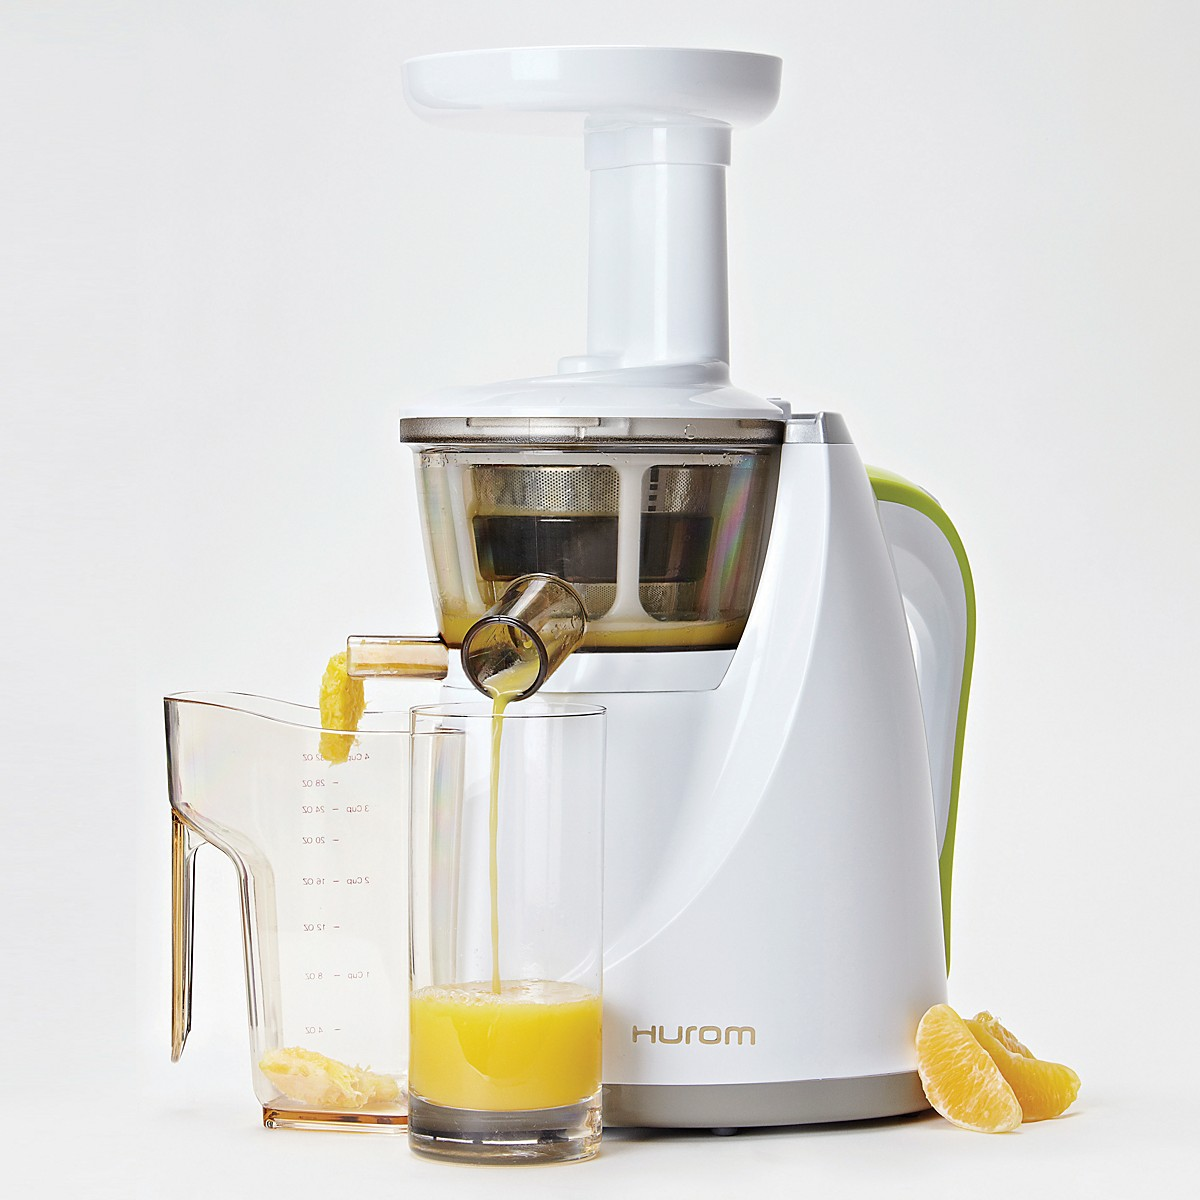 Hurom Slow Masticating Juicer : The Wish List 2014 Our favourite kitchen appliances for chefs and avid home cooks